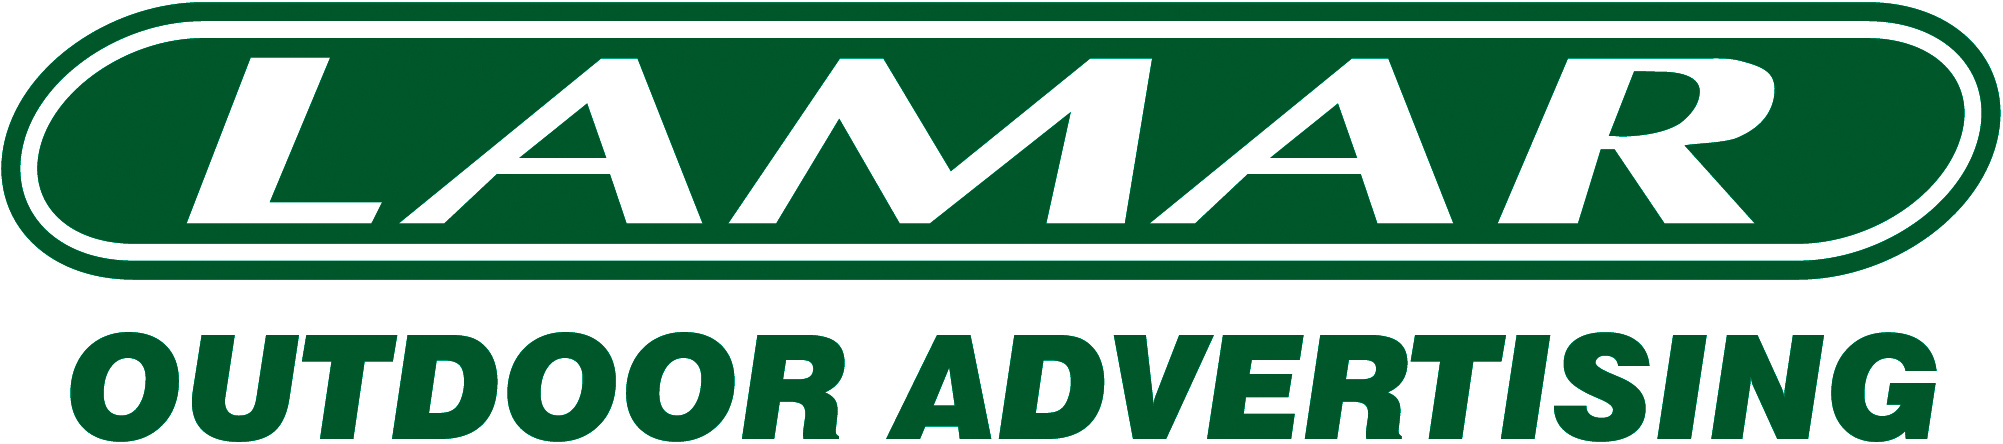 lamar outdoor advertising logo